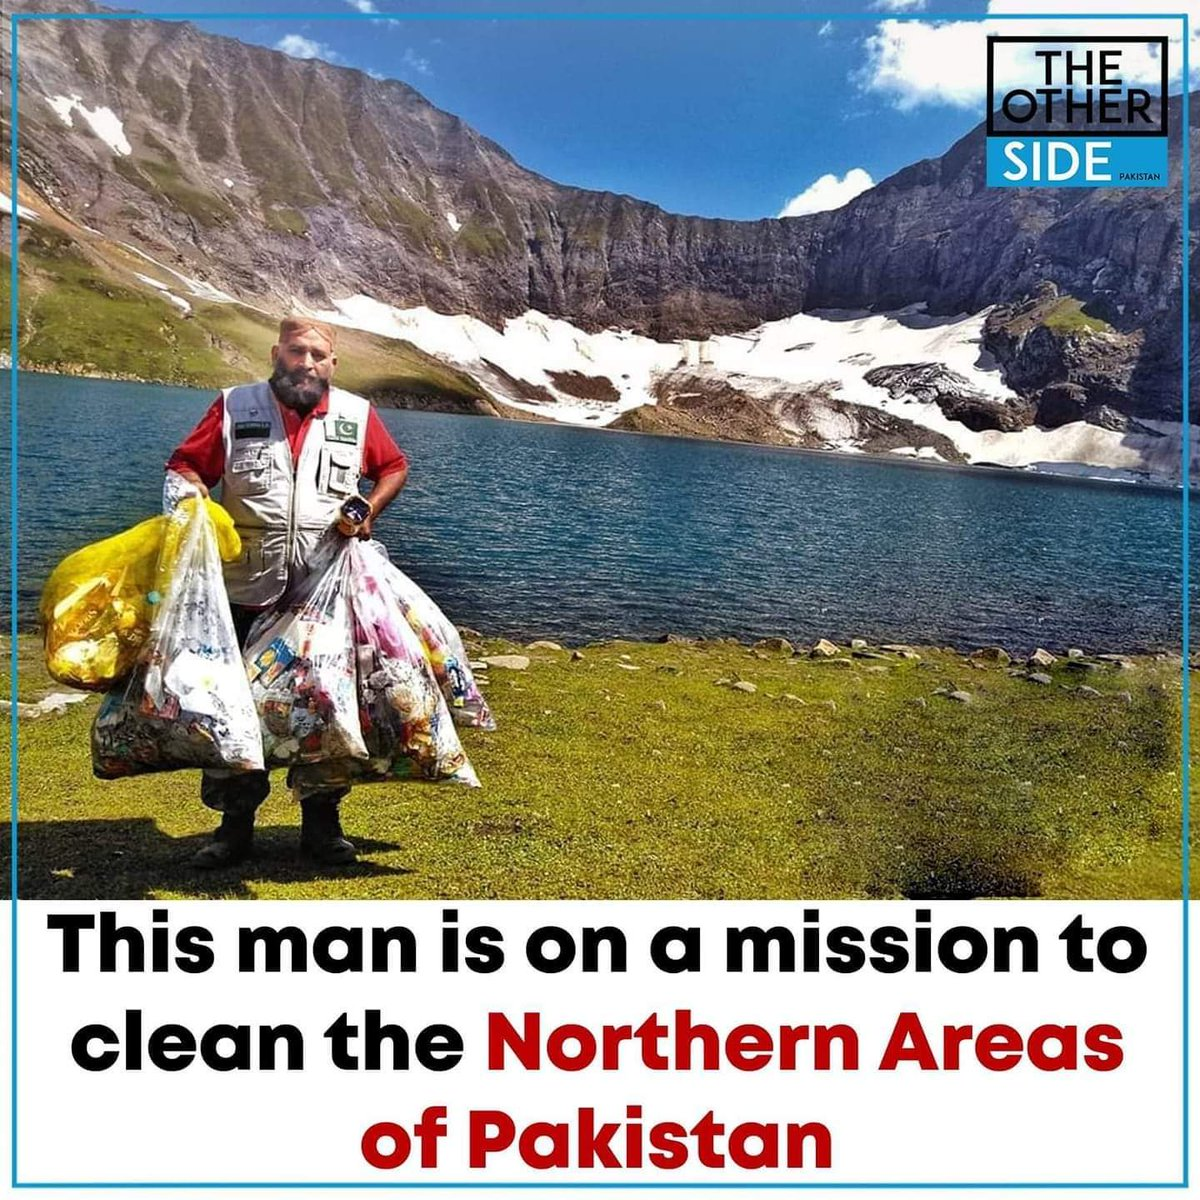 Saifullah Kashmiri is a 42 year old motorcyclist who is touring from Khunjerab to Gawadar, cleaning up the areas as much as he can along the way! He is a role model for us all. Keep your Pakistan clean !#theotherside #pakistan #saifullah #cleanshaven #ClimateAction